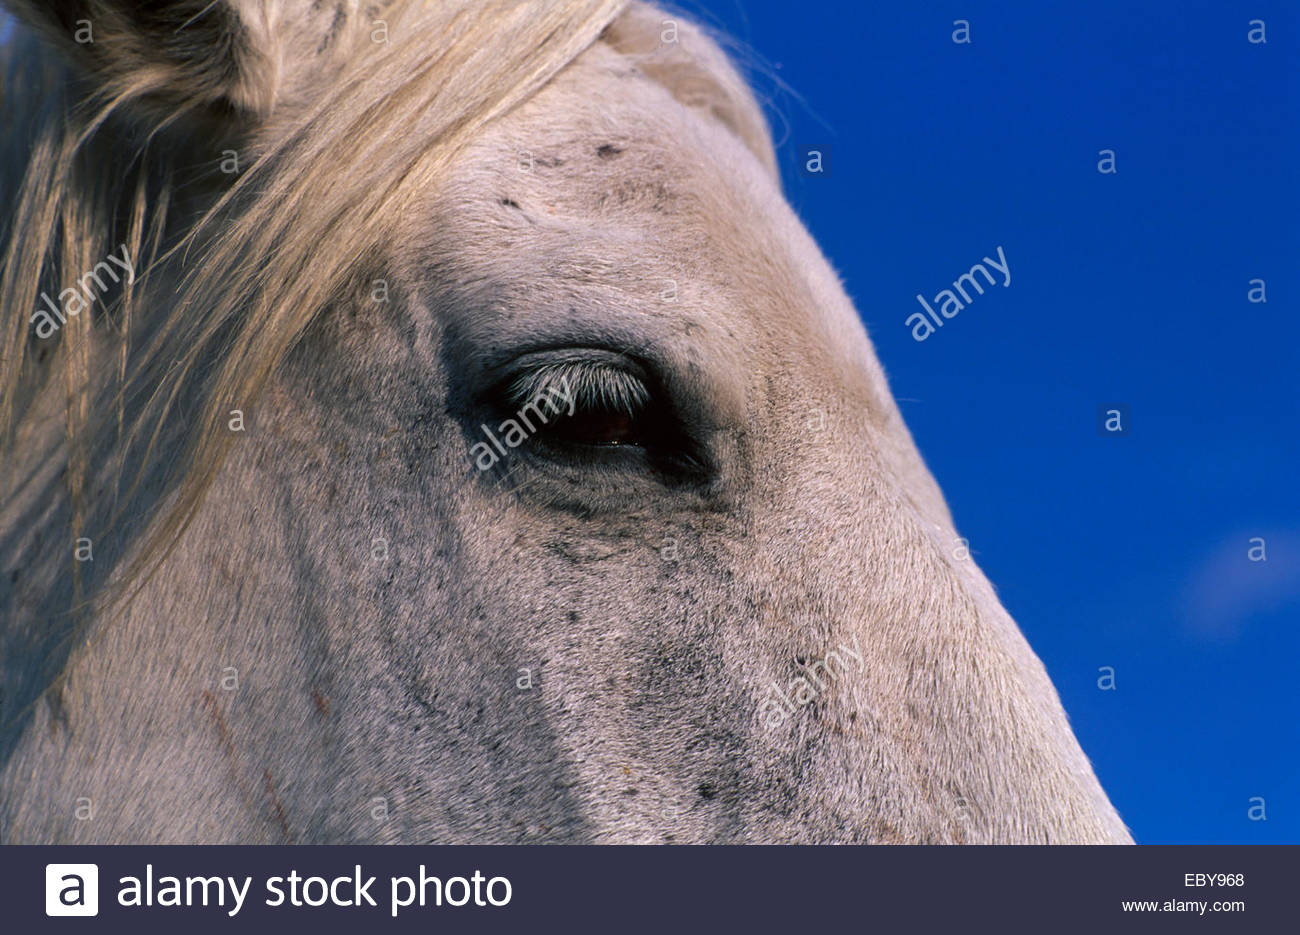 Camargue, Profile of a horse - Stock Image